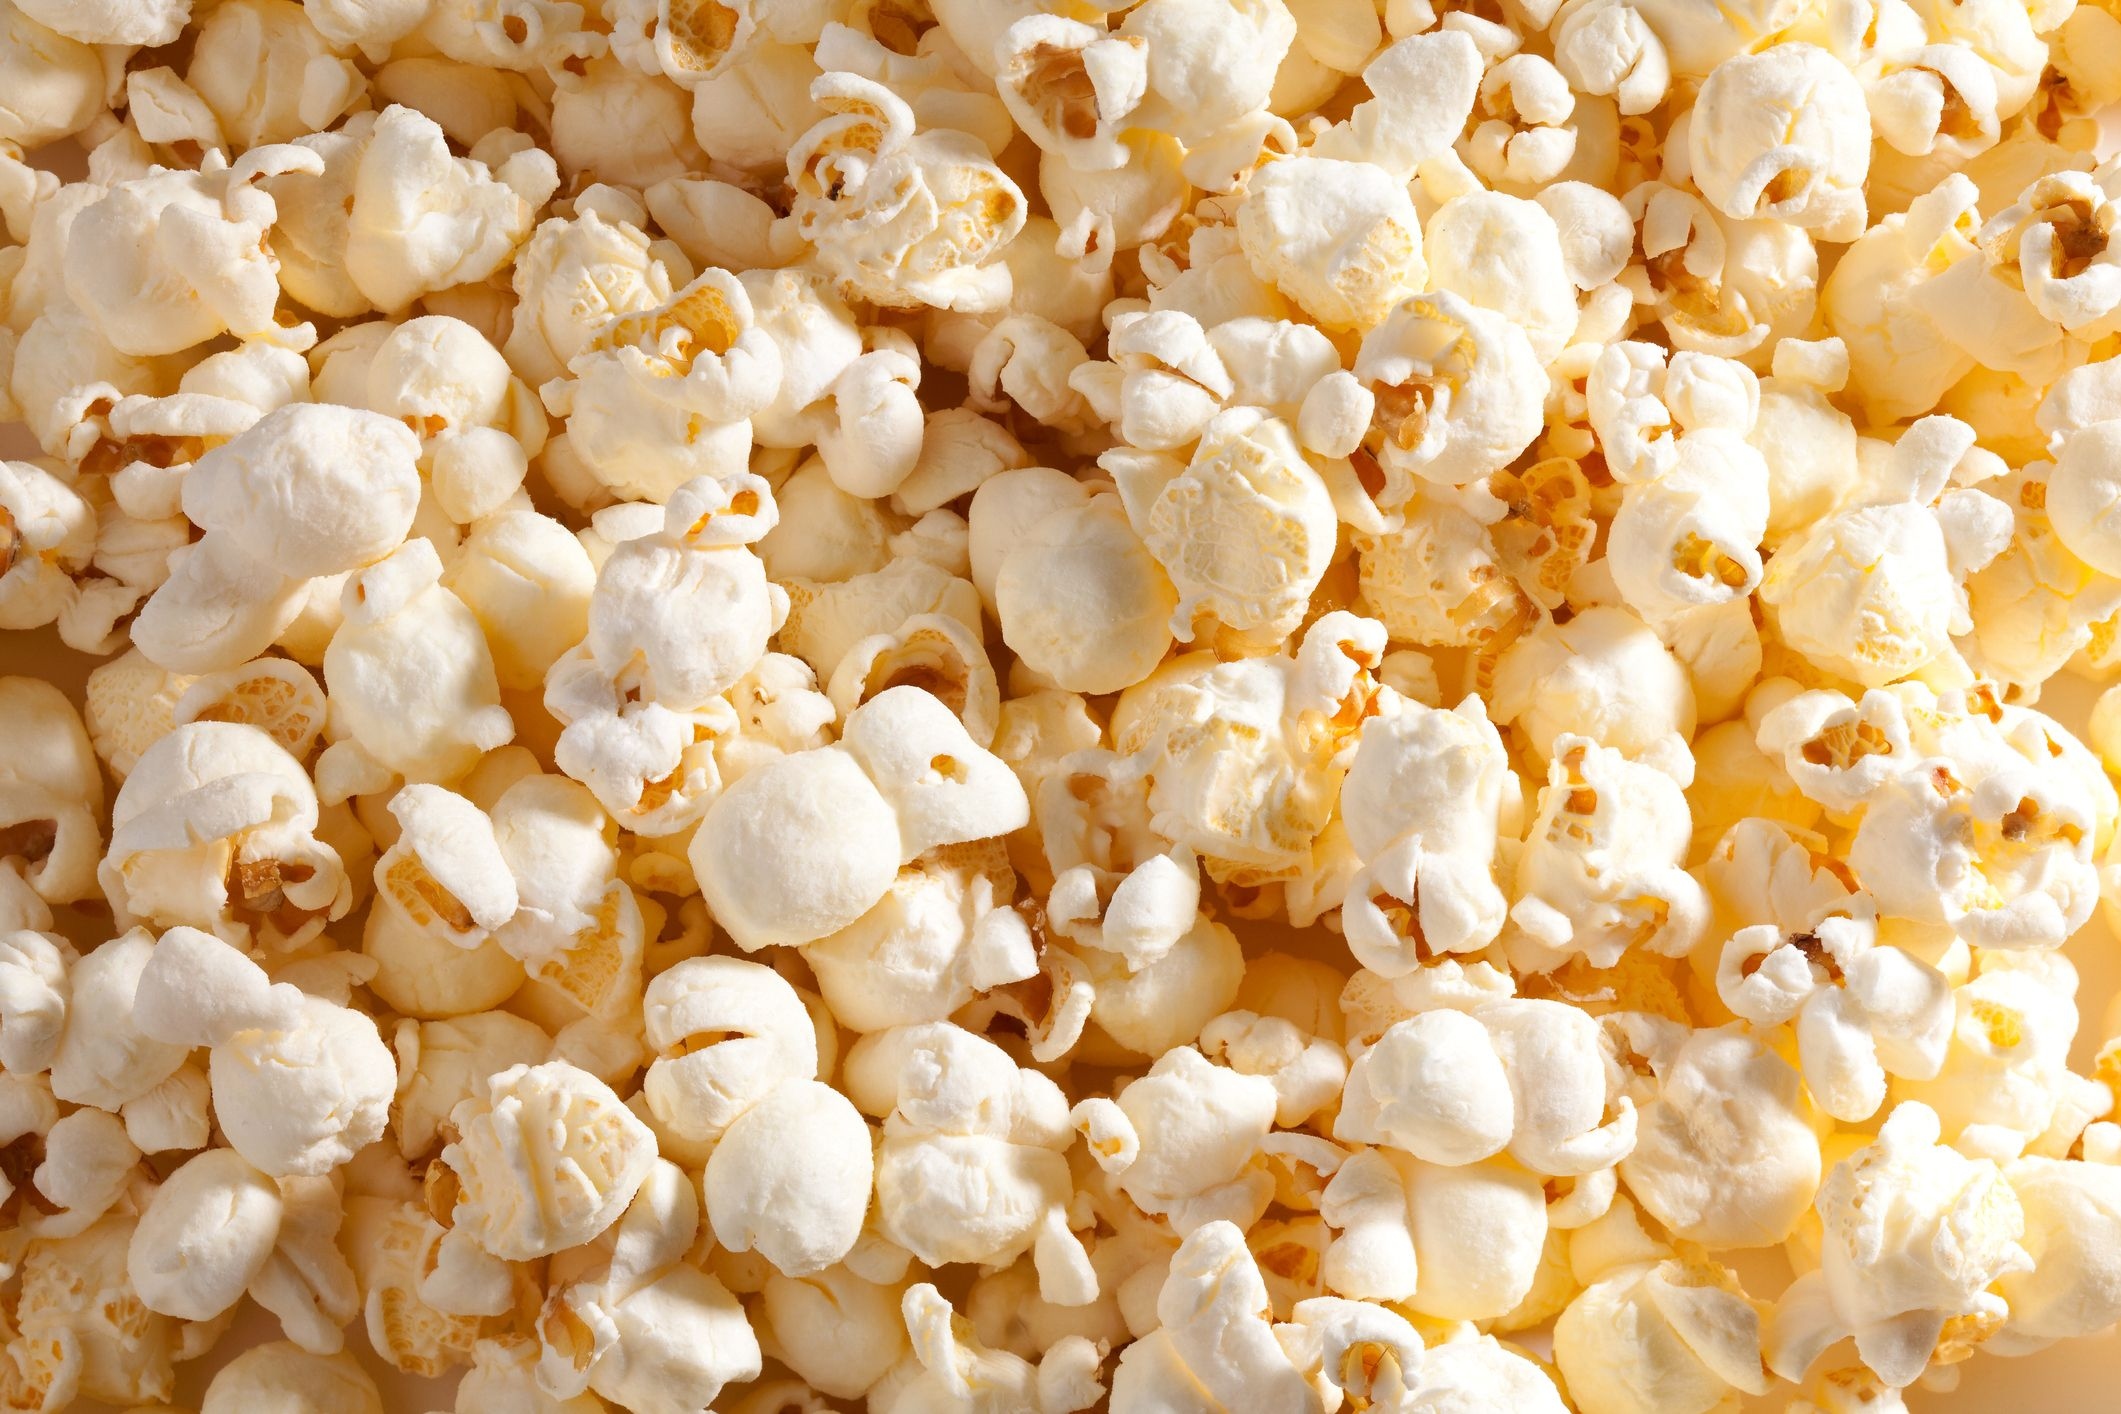 Is Popcorn Healthy? - Popcorn Nutrition Facts And Cooking Tips